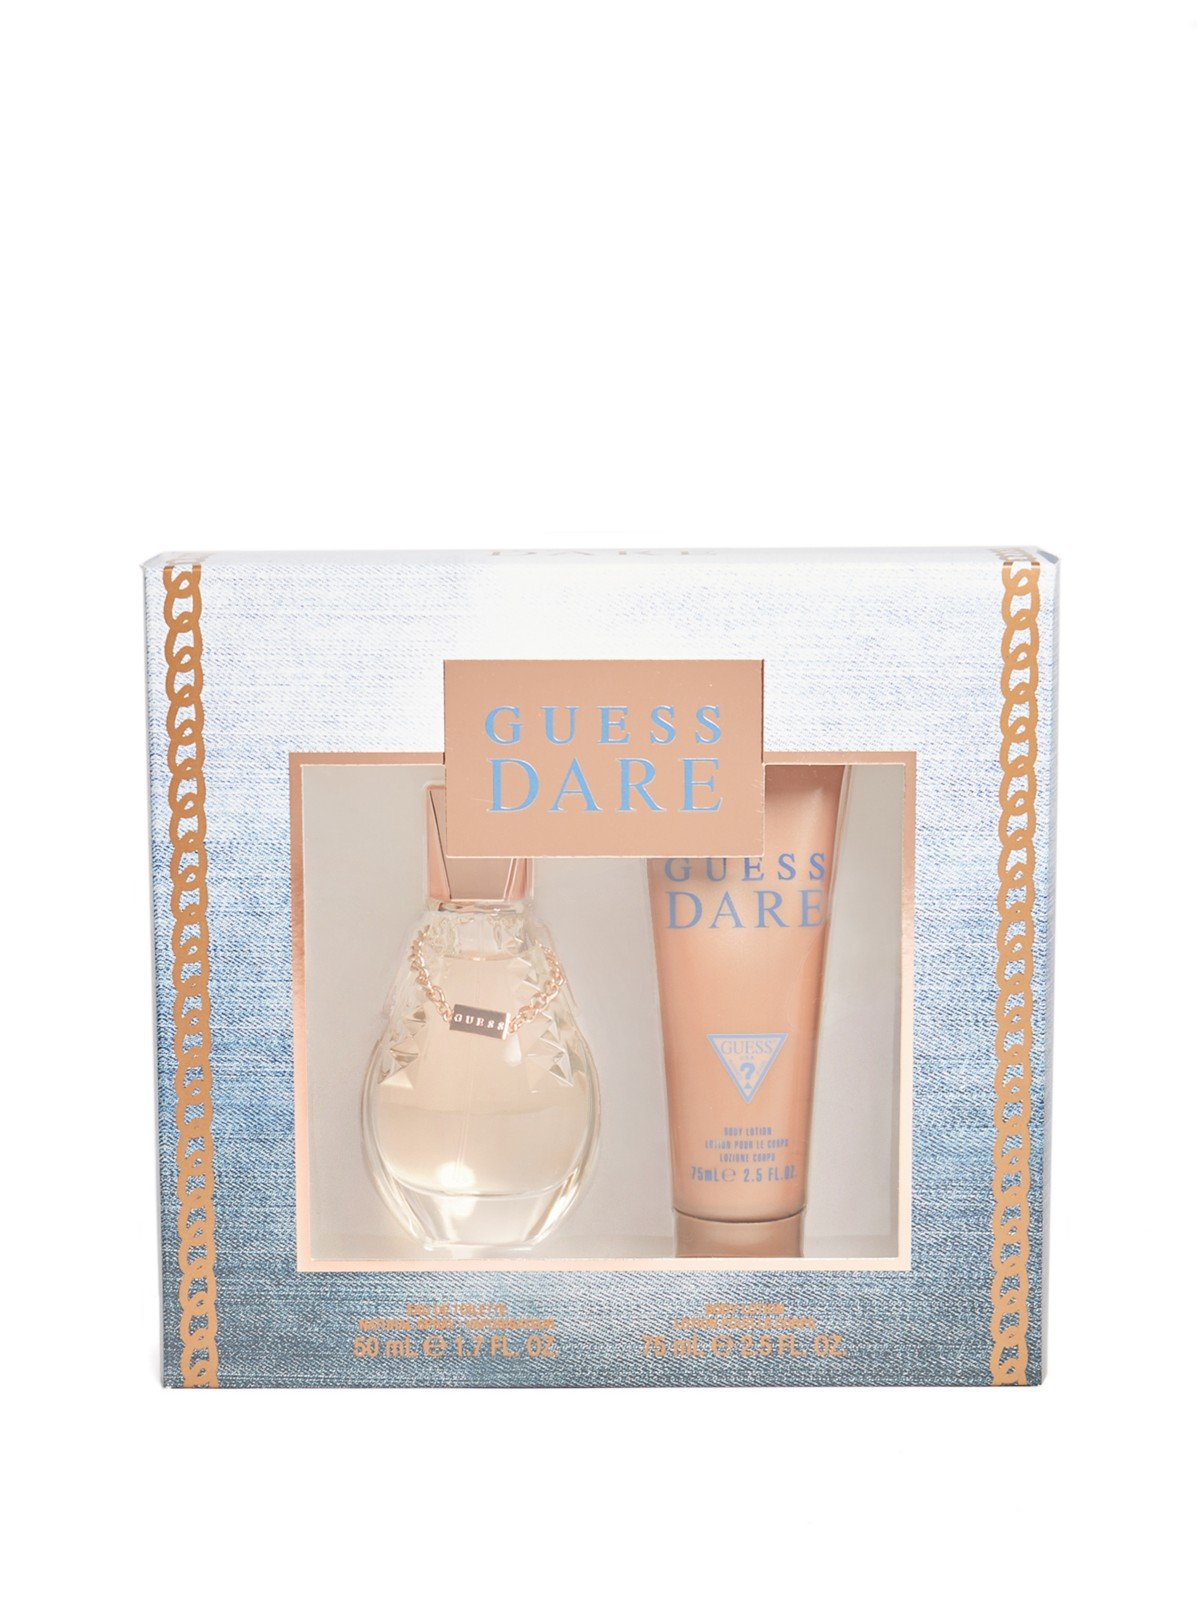 GUESS Factory Women's GUESS Dare Two-Piece Gift Set